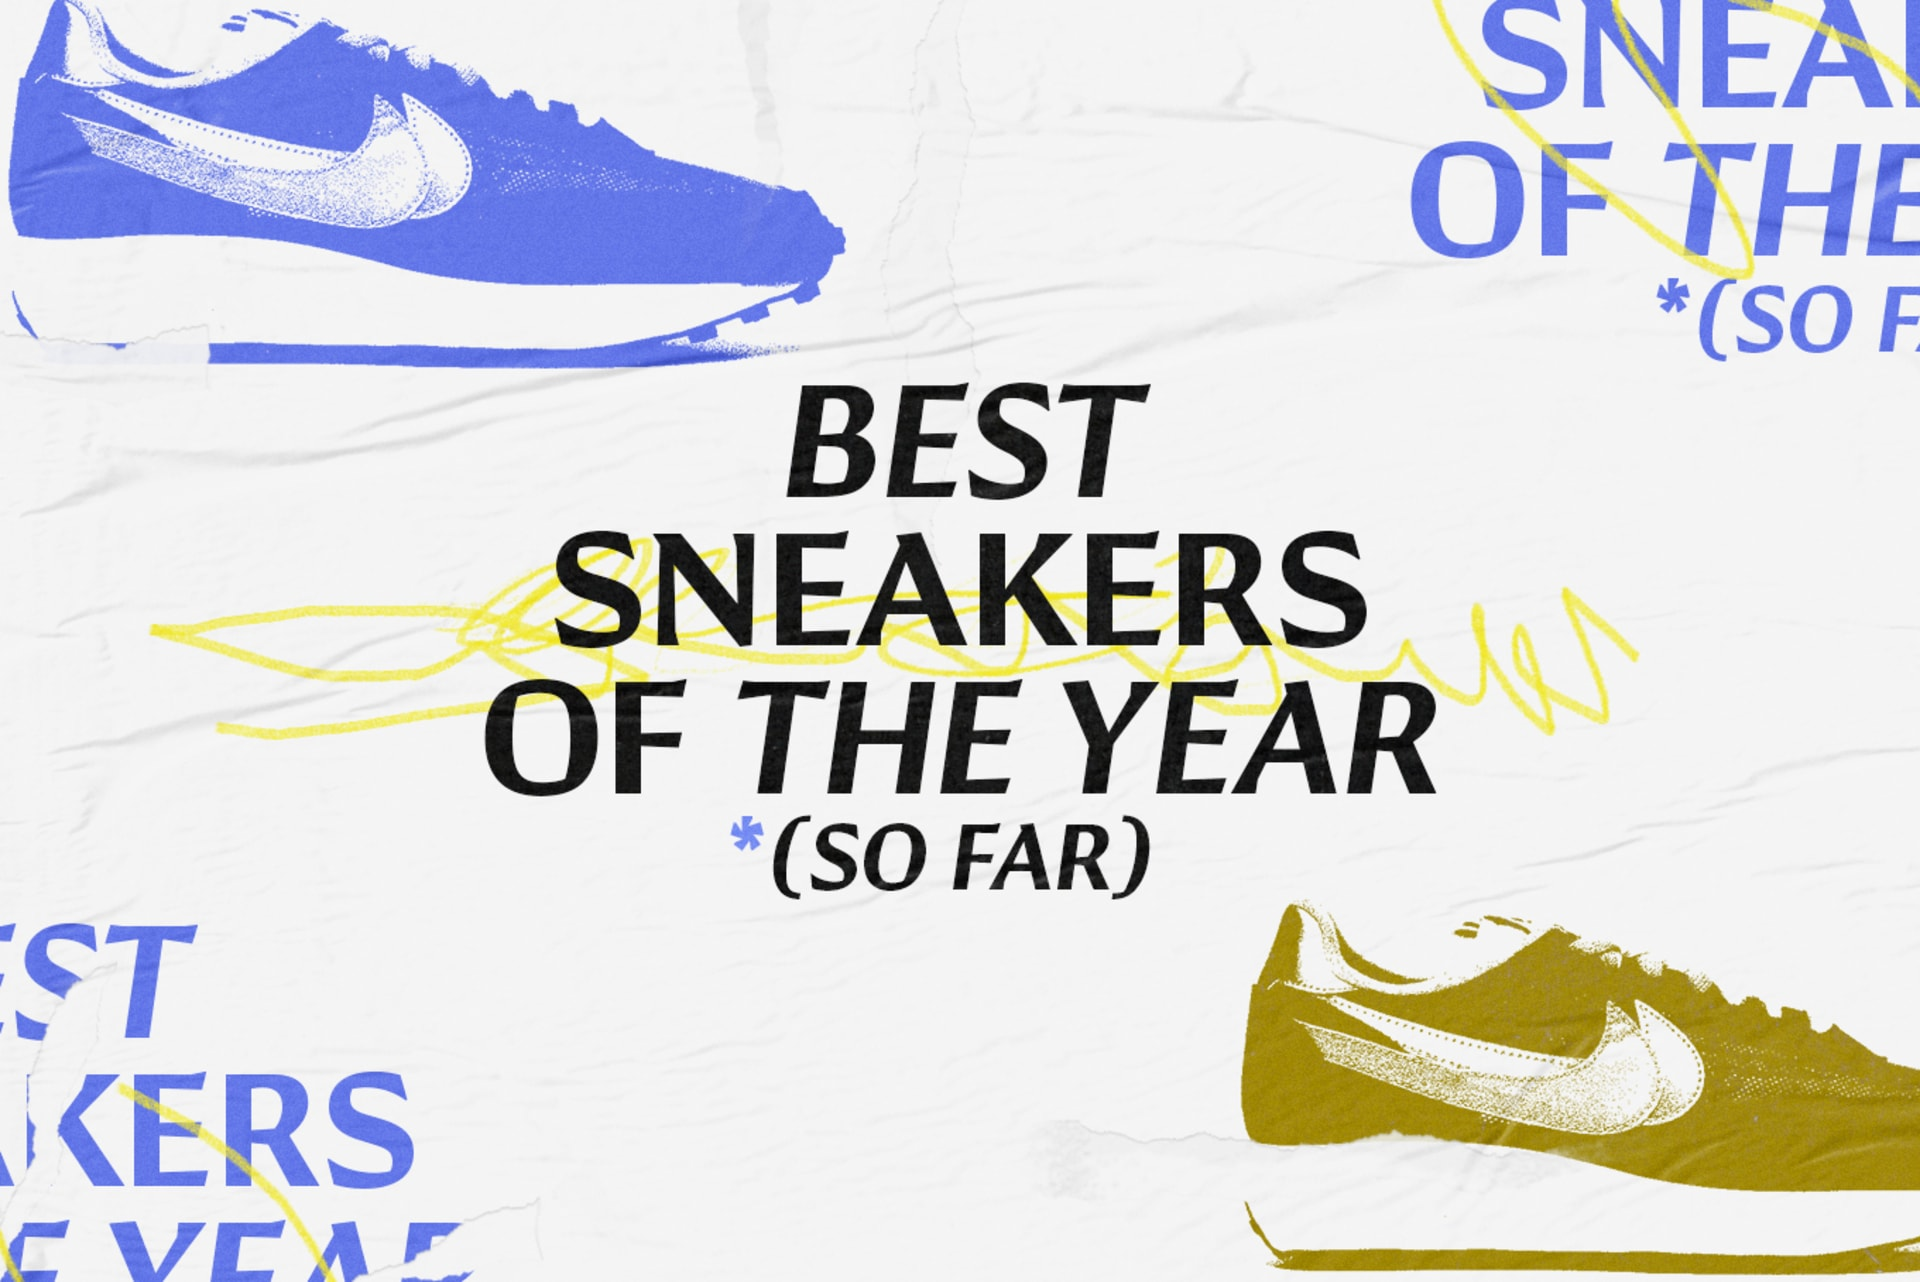 a9f0a4cfaea Best Sneakers of 2019 (So Far): Top Sneakers of the Year | Complex